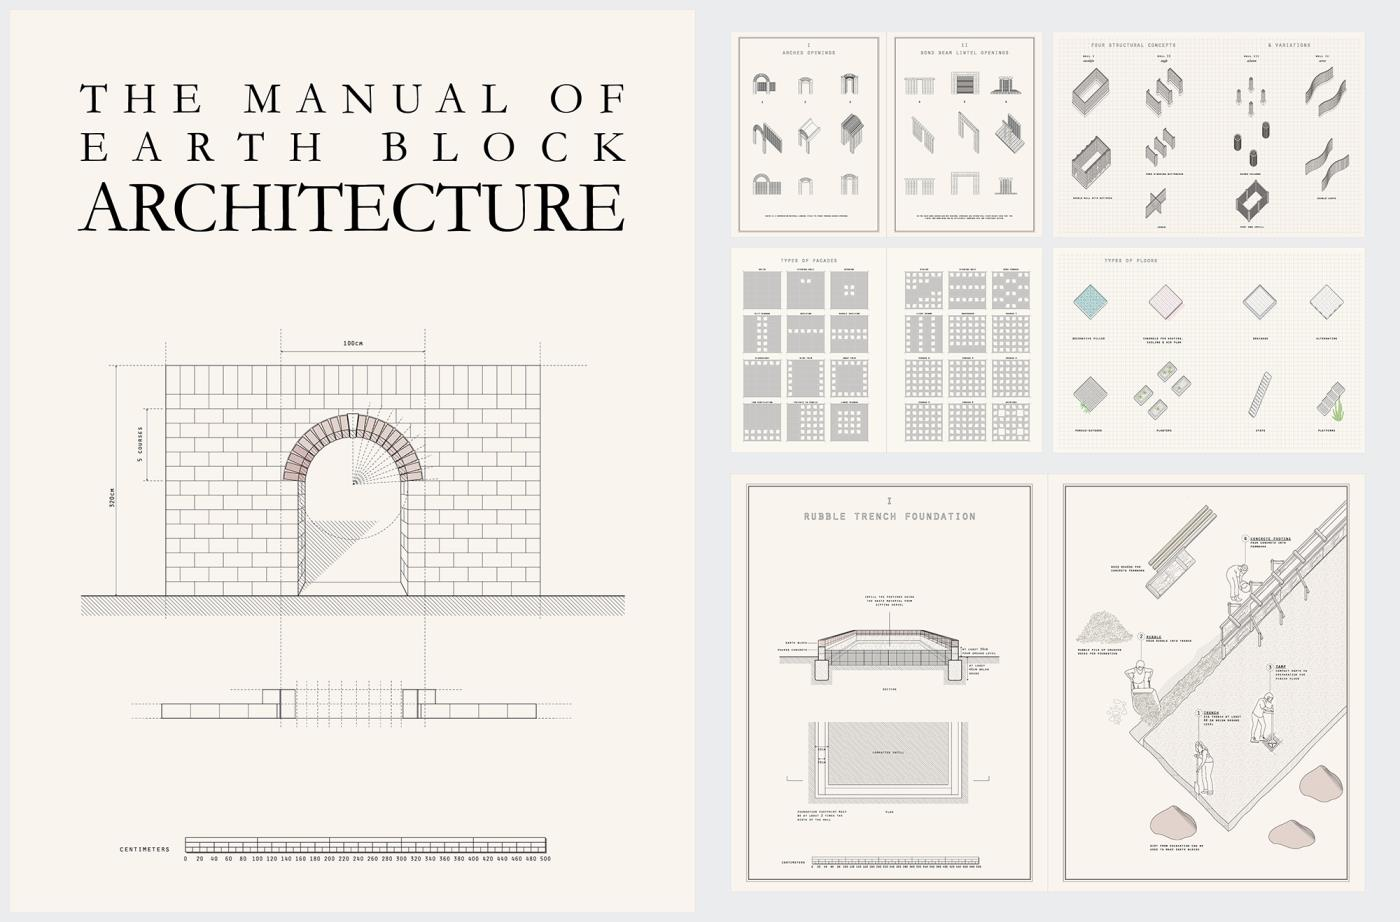 The Manual of Earth Block Architecture : Constructing the Architecture of Remittance in Rural Mexico